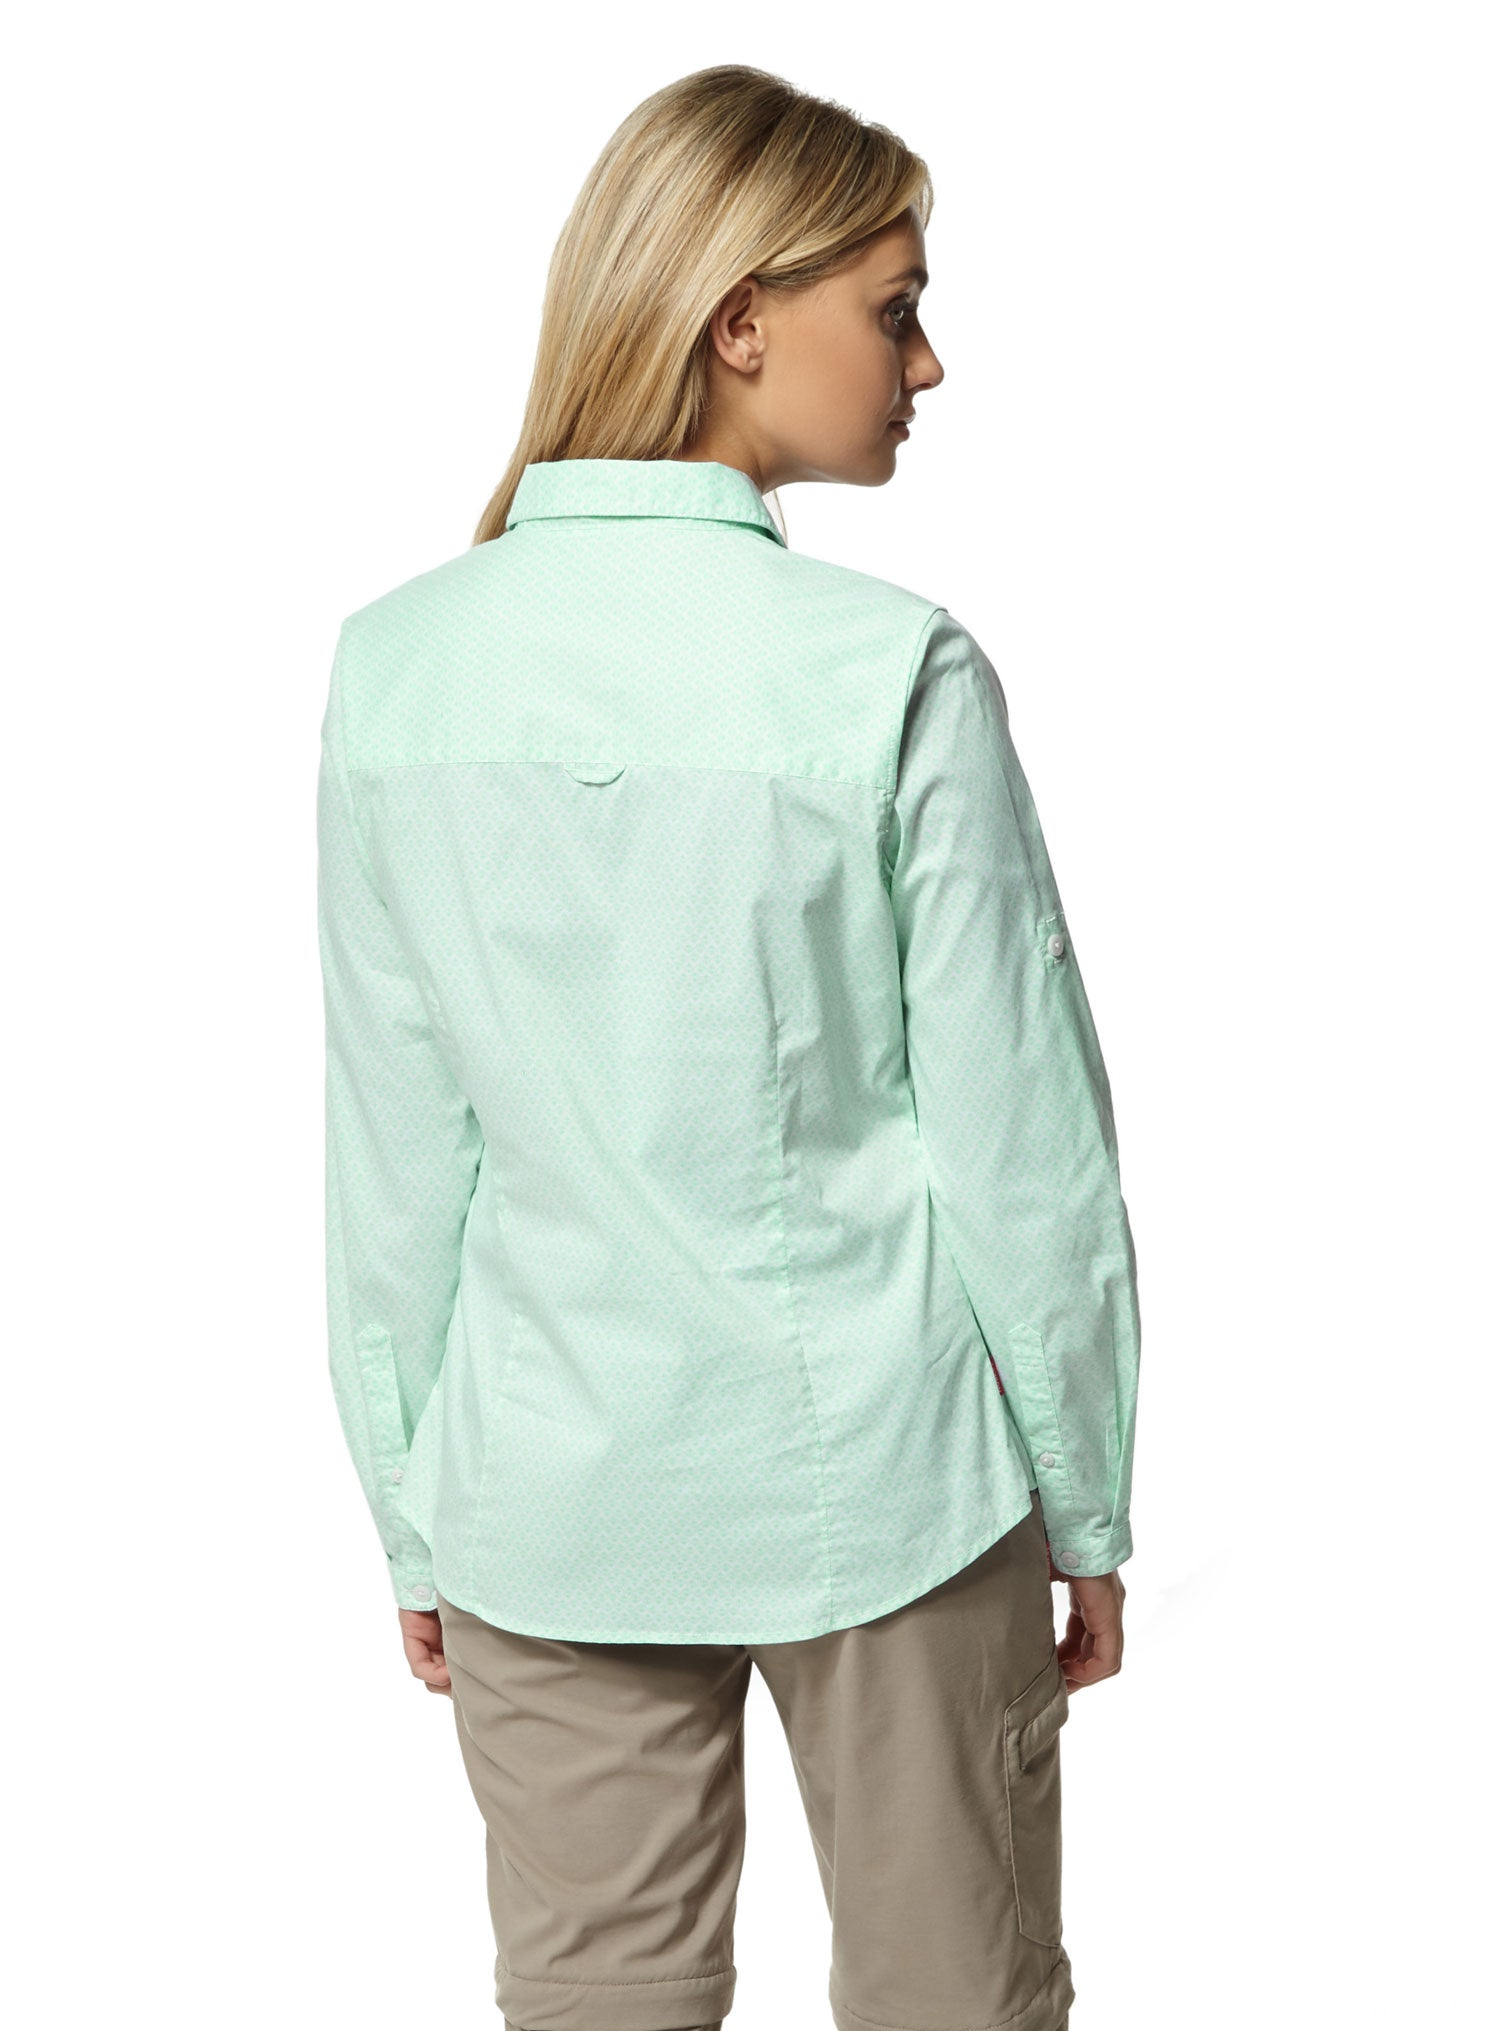 Back view lady wearing Craghoppers NosiLife Verona Long Sleeve Shirt#